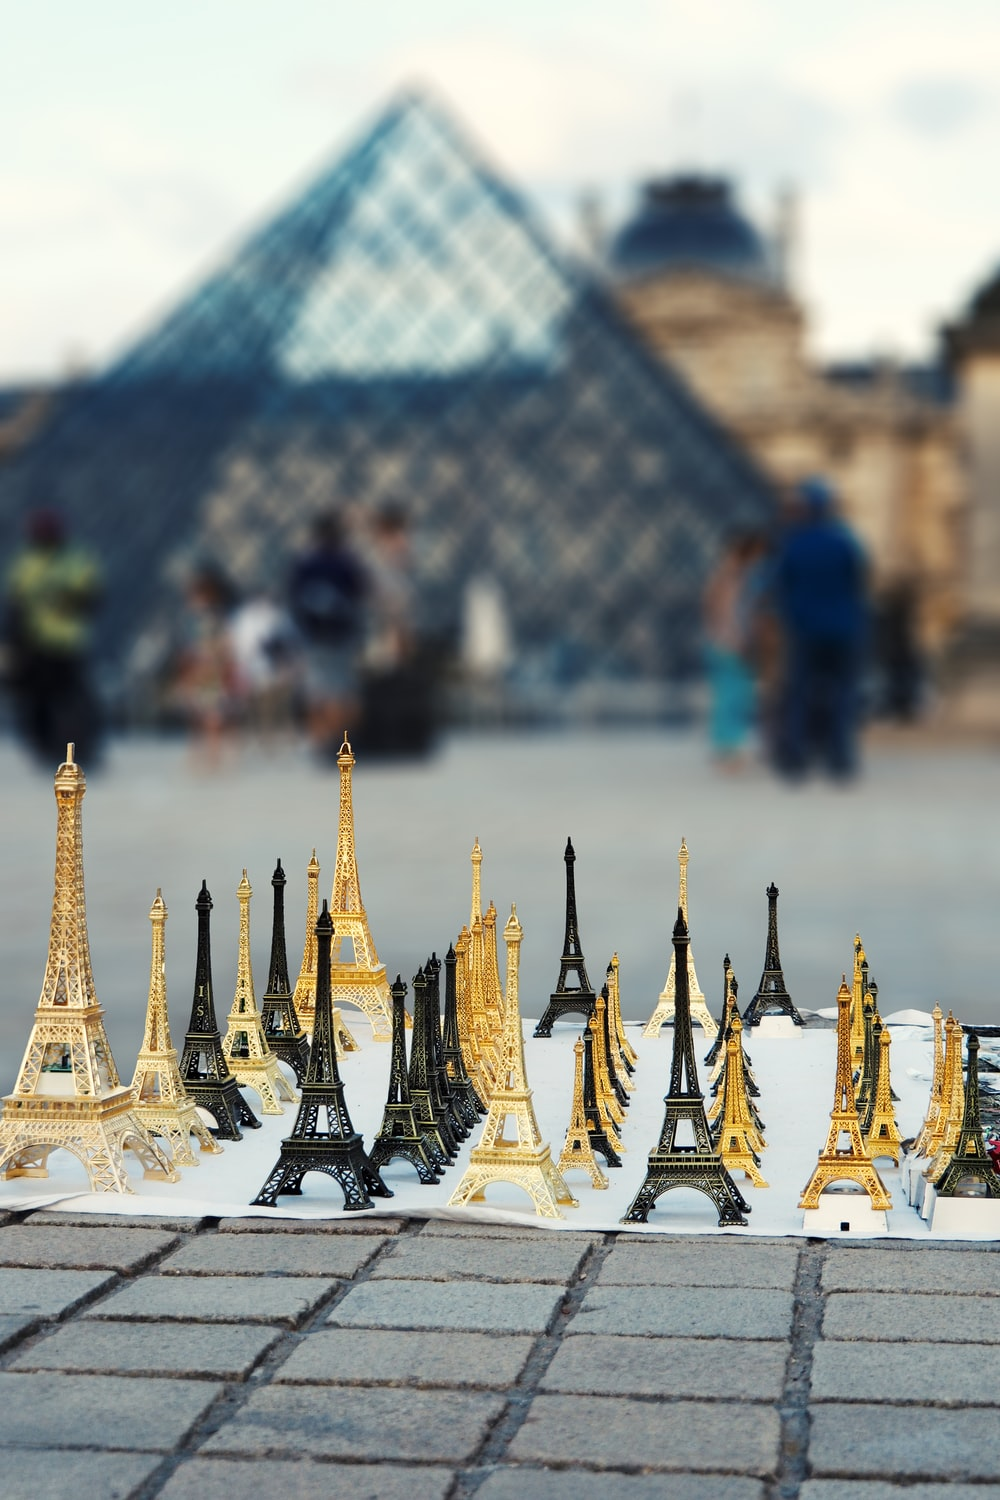 Eiffel Tower themed chess game